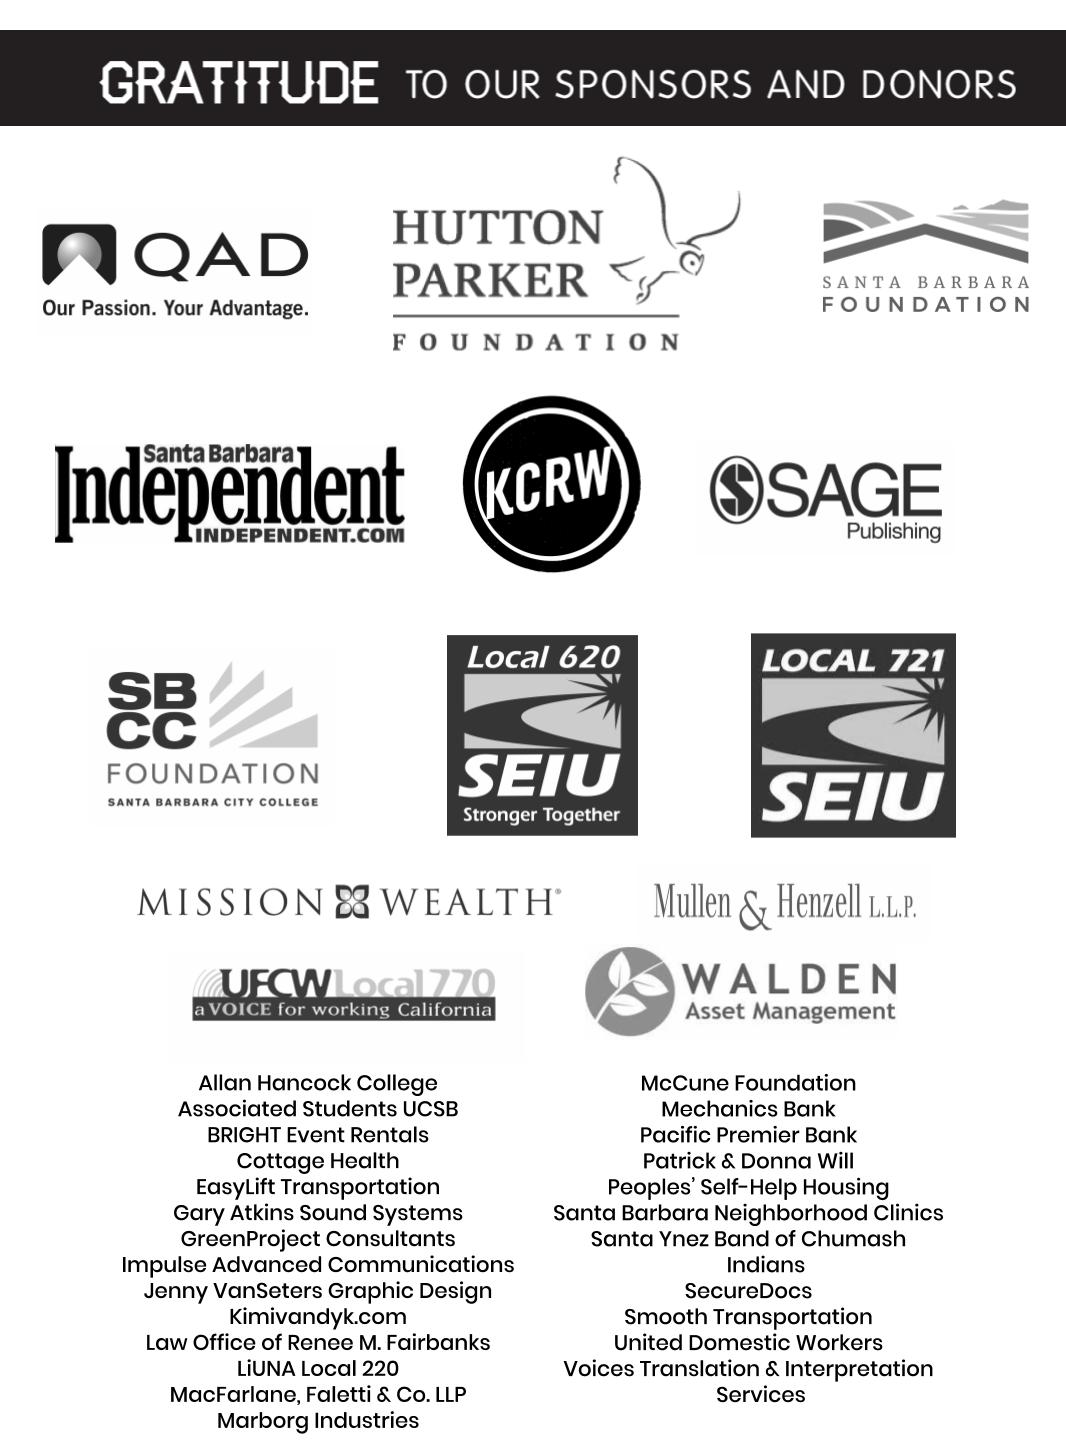 B&R 2019 Thank you to Sponsors - updated 9_23_2019